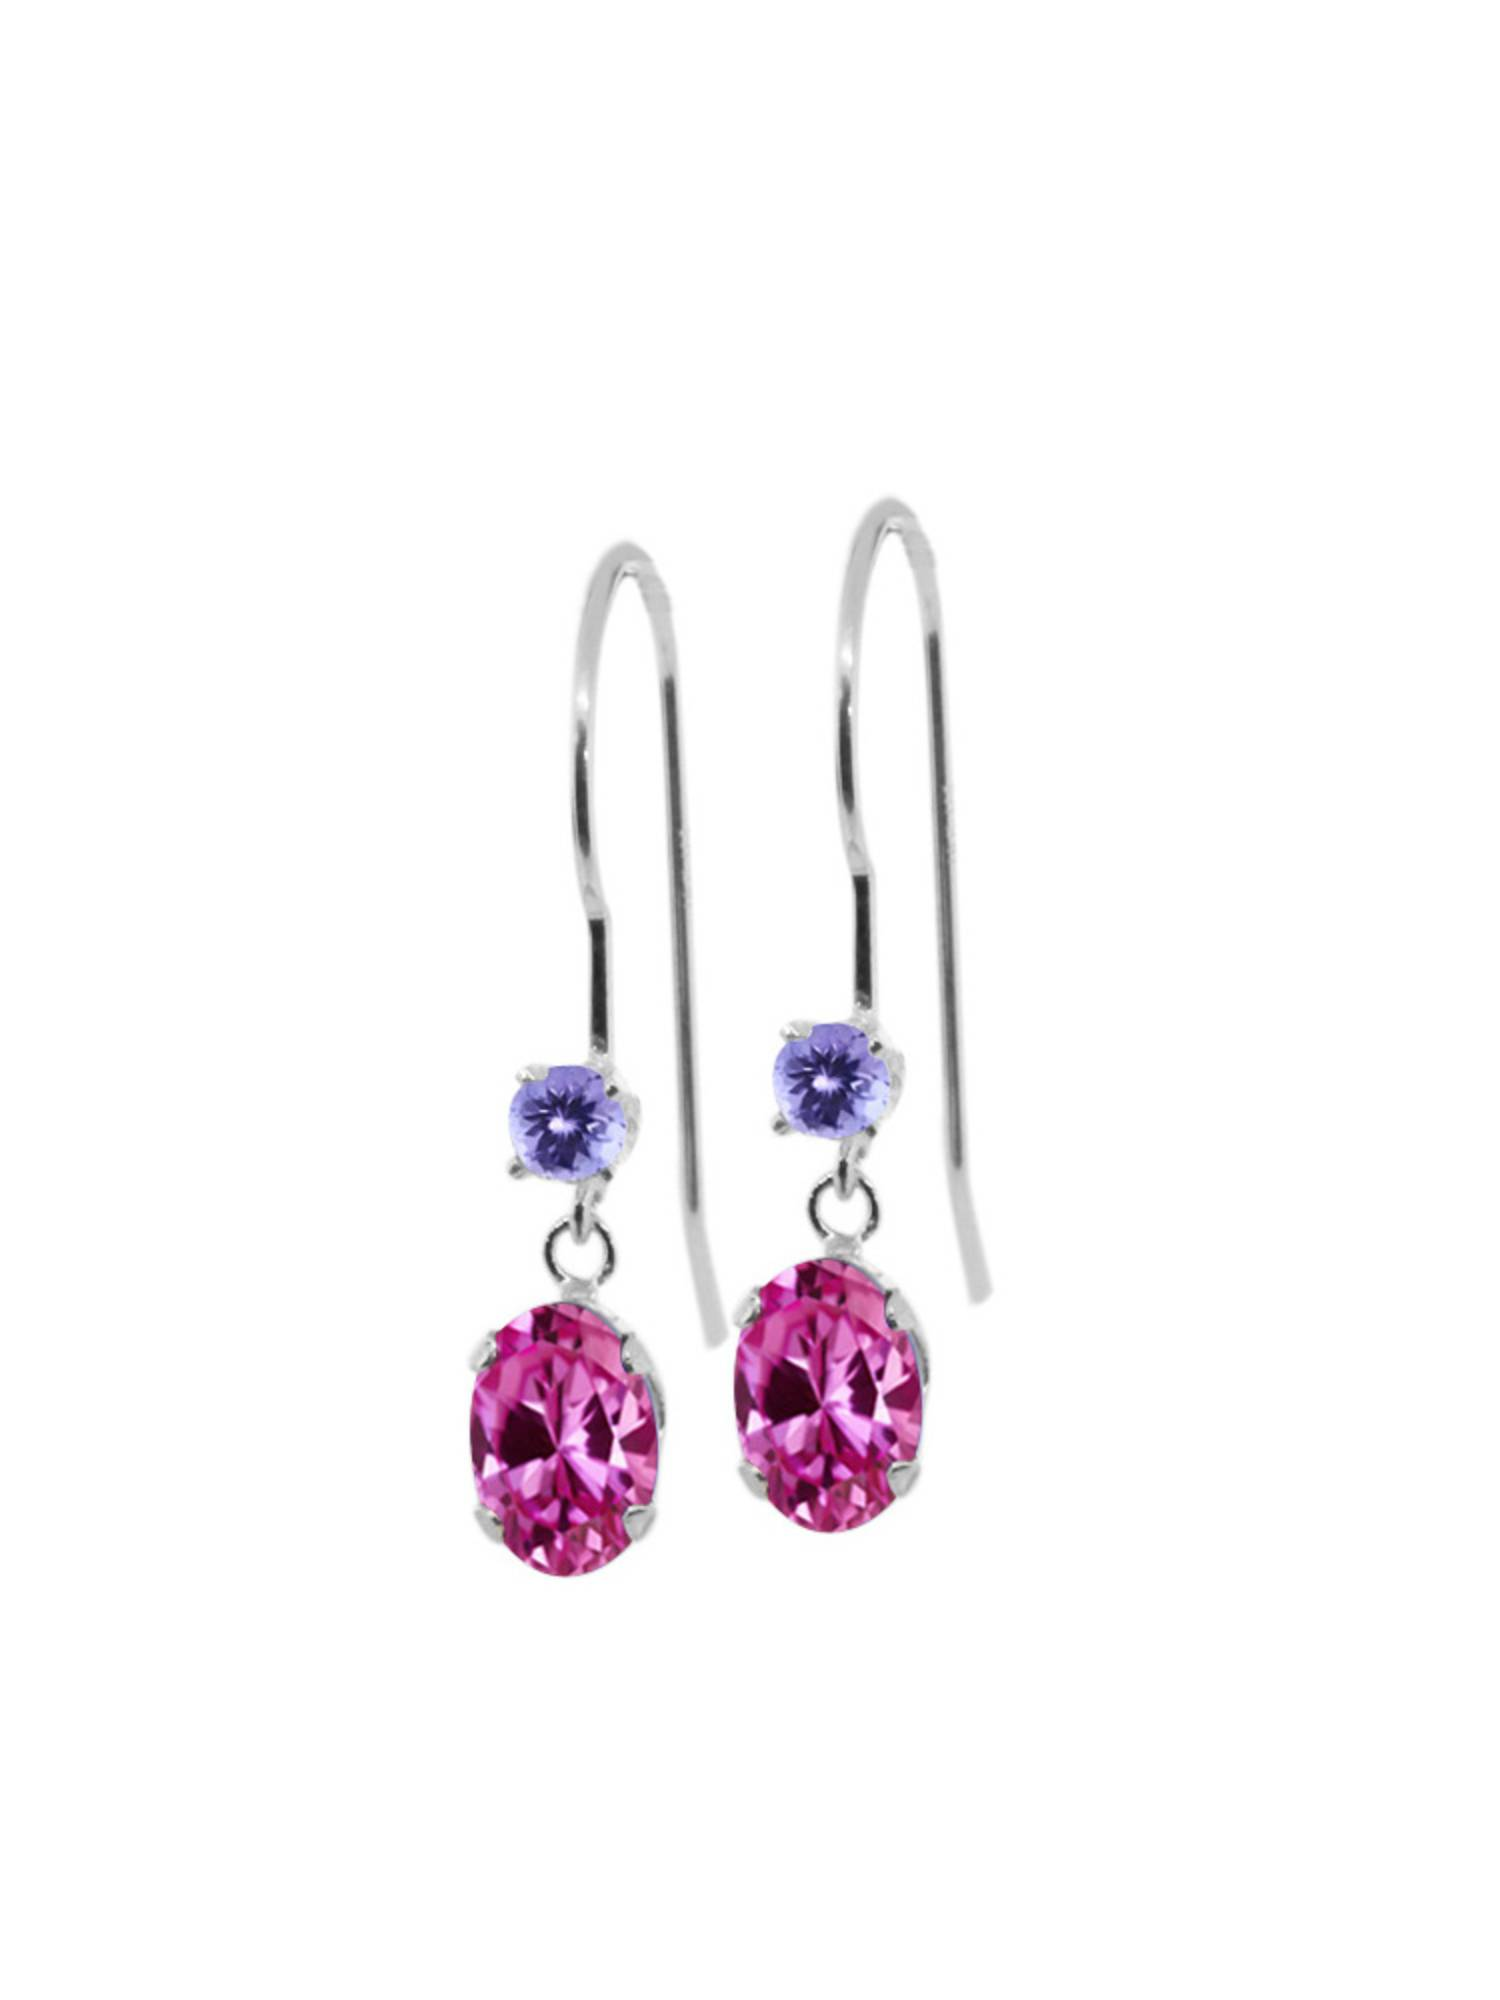 1.36 Ct Oval Pink Created Sapphire Blue Tanzanite 14K White Gold Earrings by